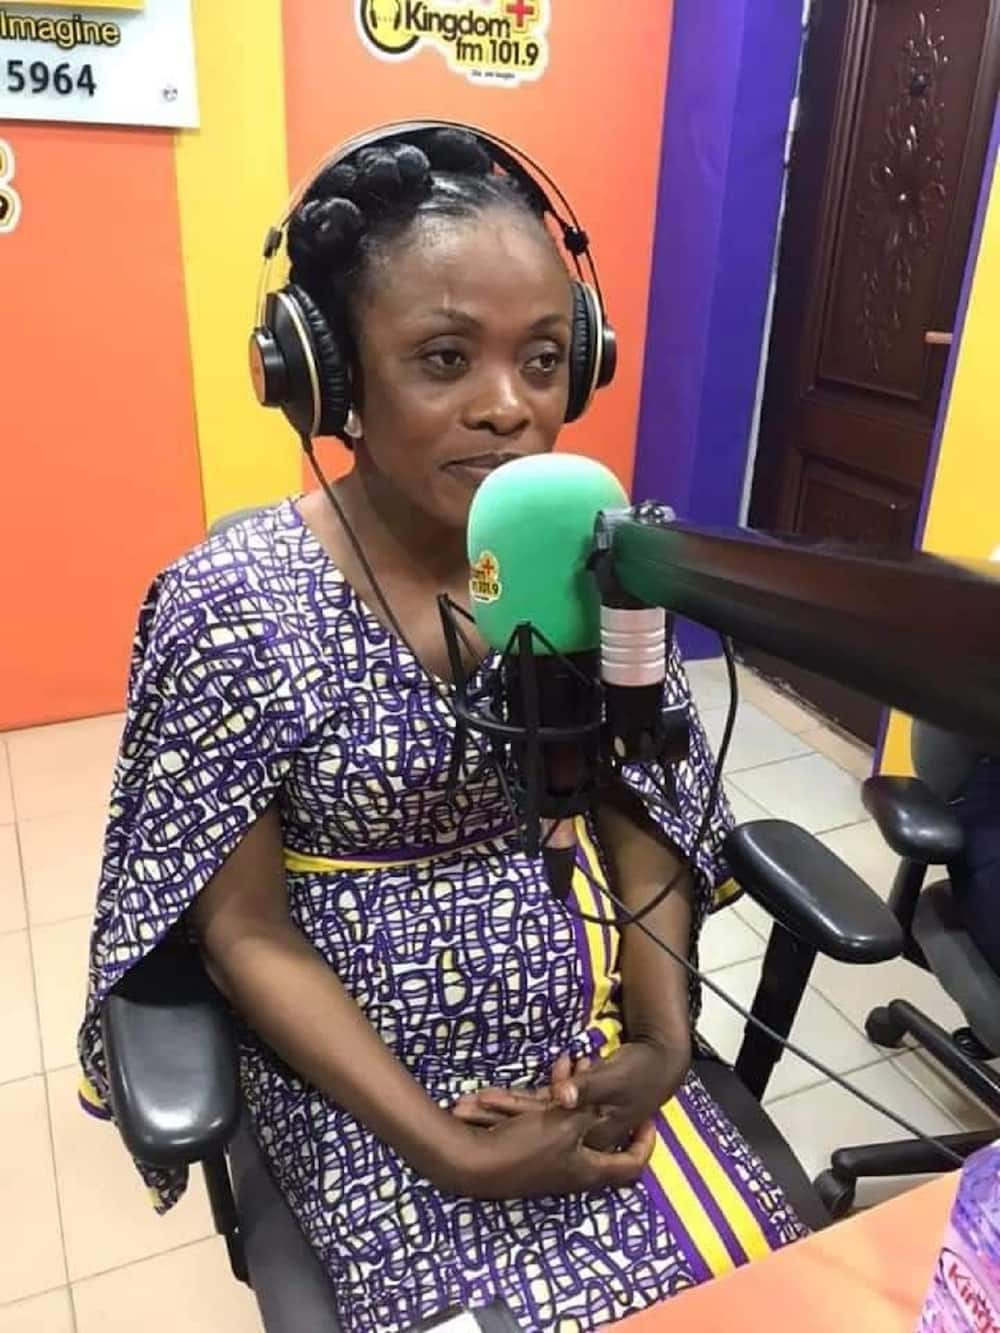 Photo of Evangelist Diana Asamoah with protruding belly raises eyebrow